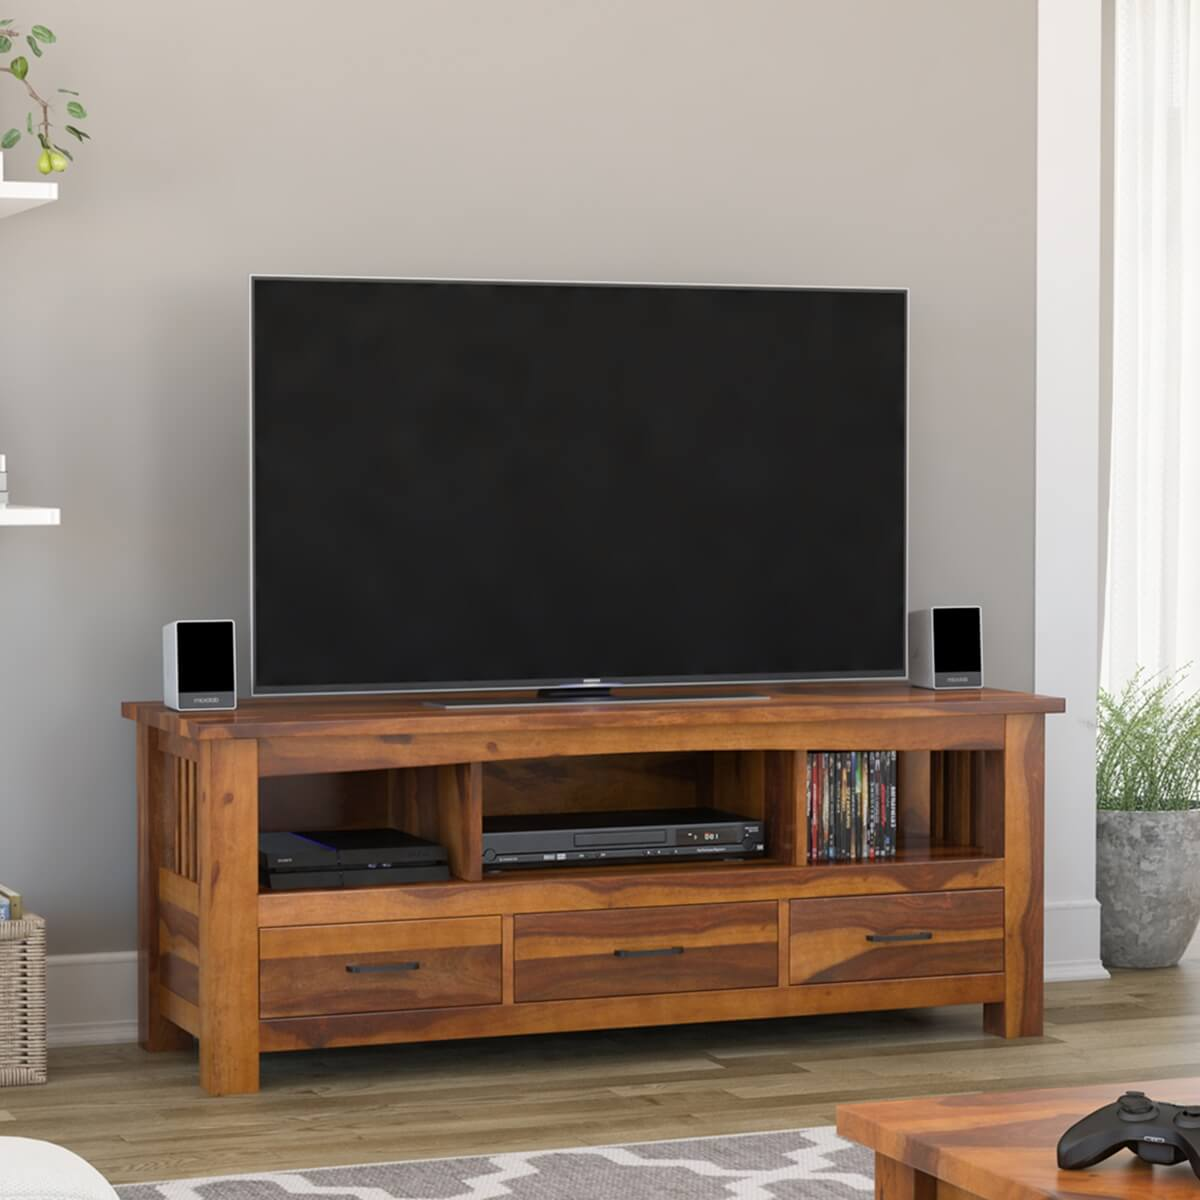 Jeddito Mission Rustic Solid Wood Tv Stand Media Console With 3 Drawer